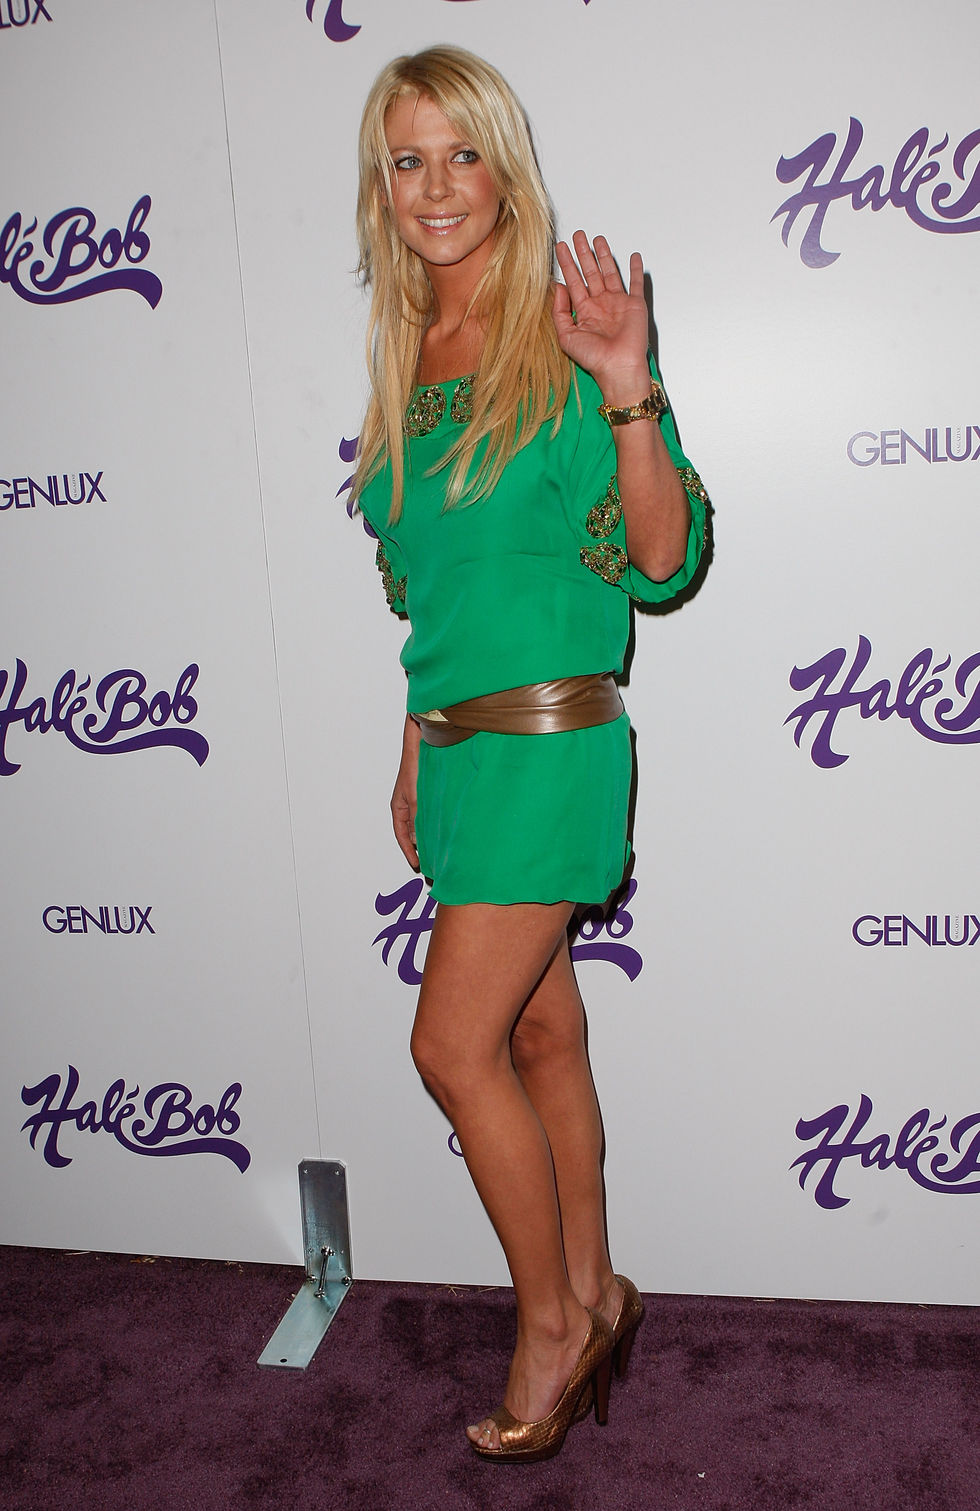 emmanuelle-chriqui-and-tara-reid-hale-bob-summer-of-love-party-in-beverly-hills-01